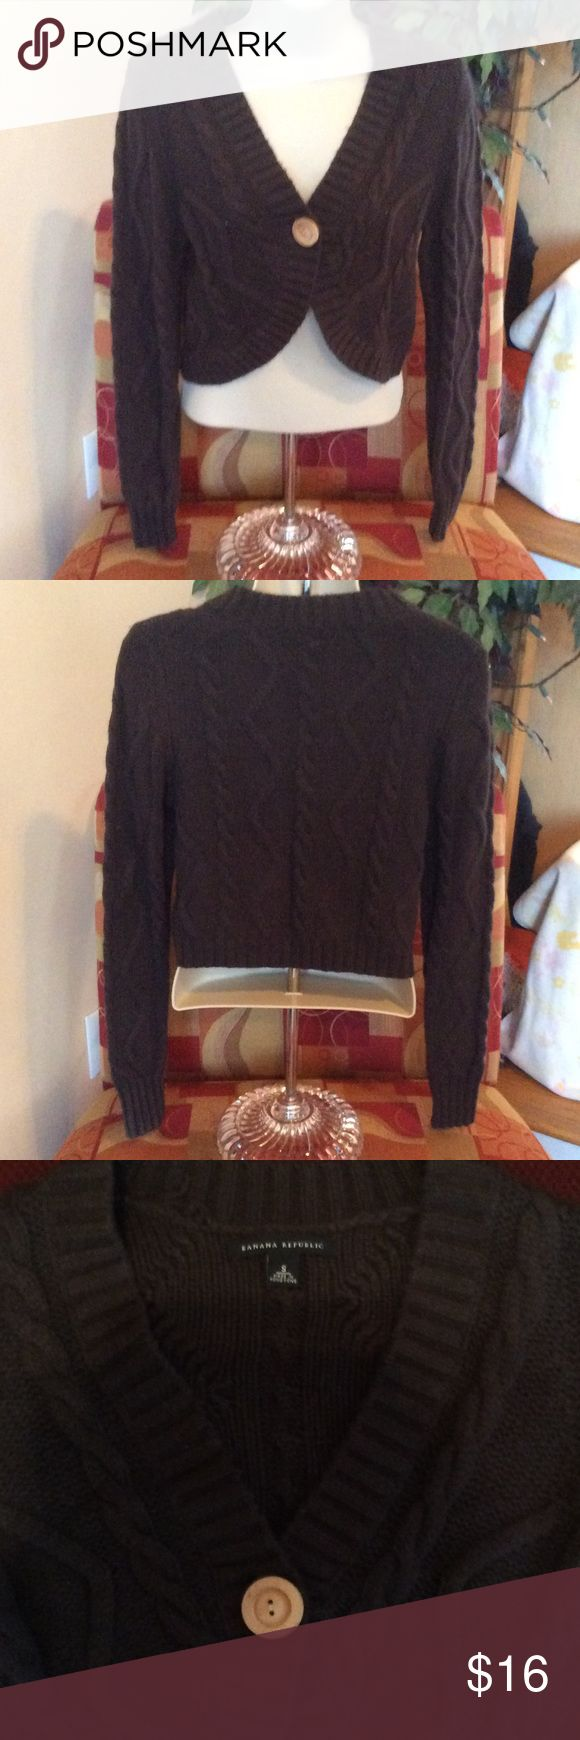 Banana republic shrug sweater really cute shrug sweater with single wooden button 4th photo gives